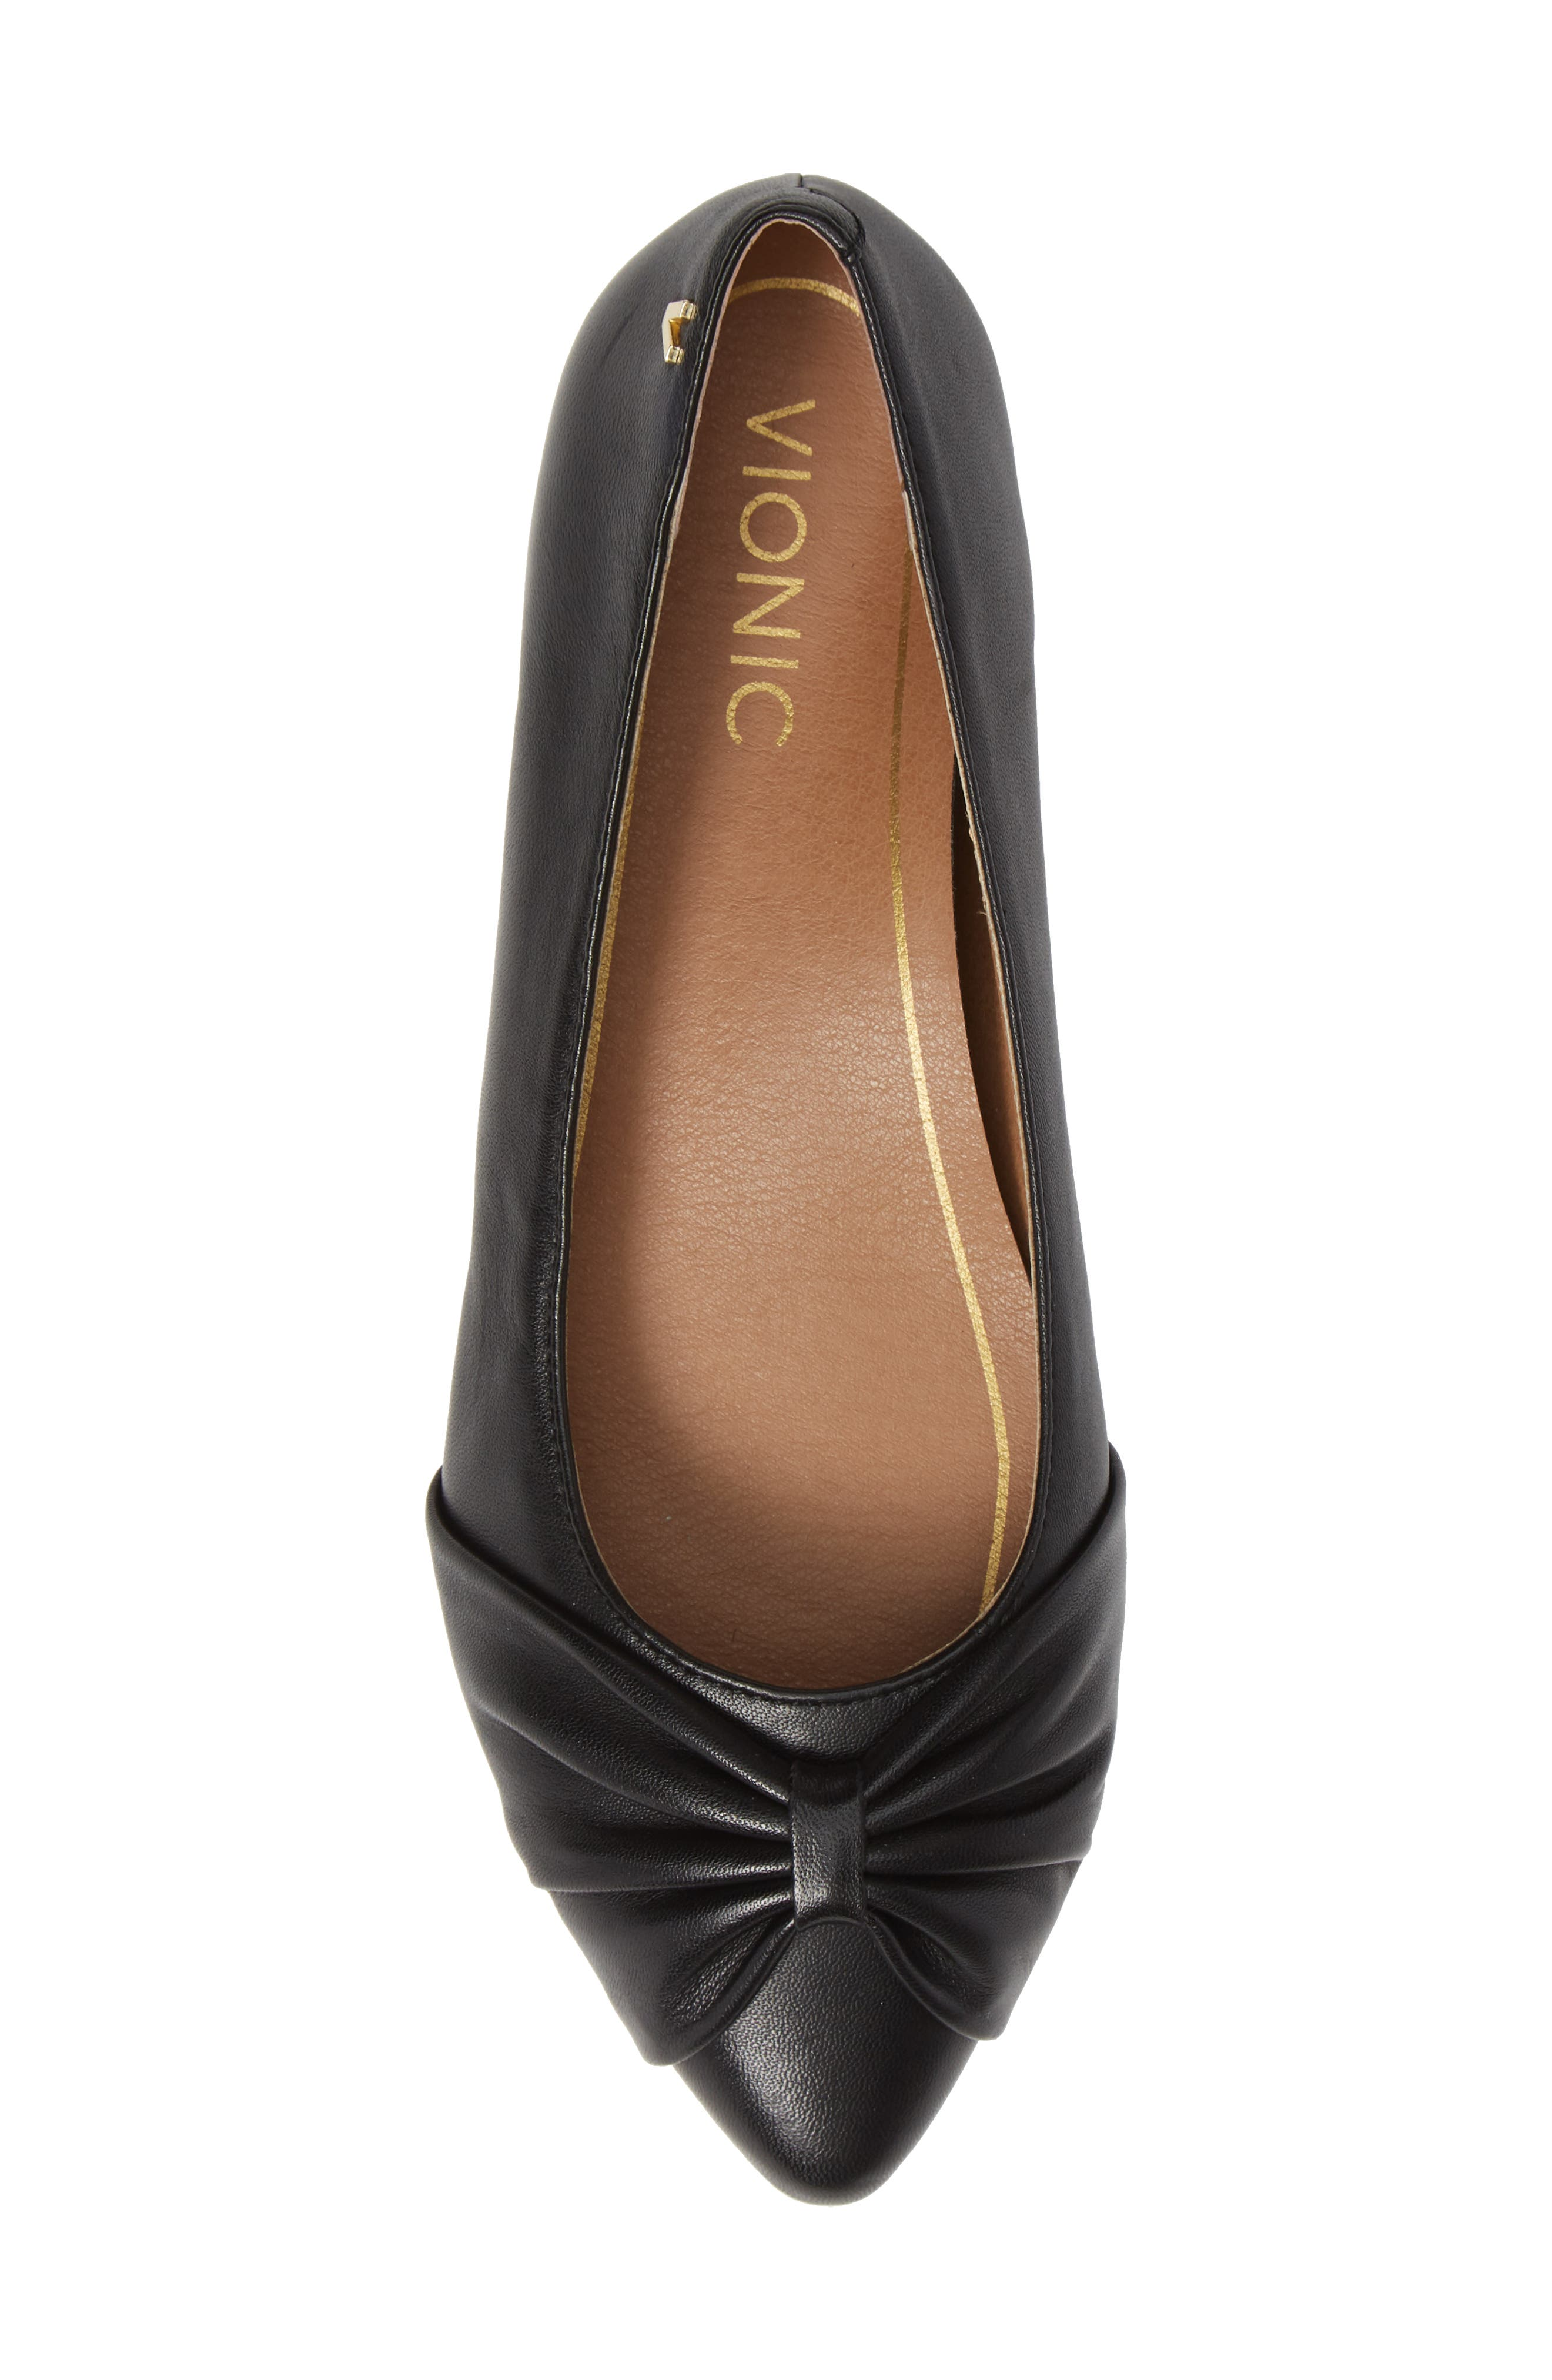 Gramercy Pointy Toe Flat,                             Alternate thumbnail 5, color,                             001